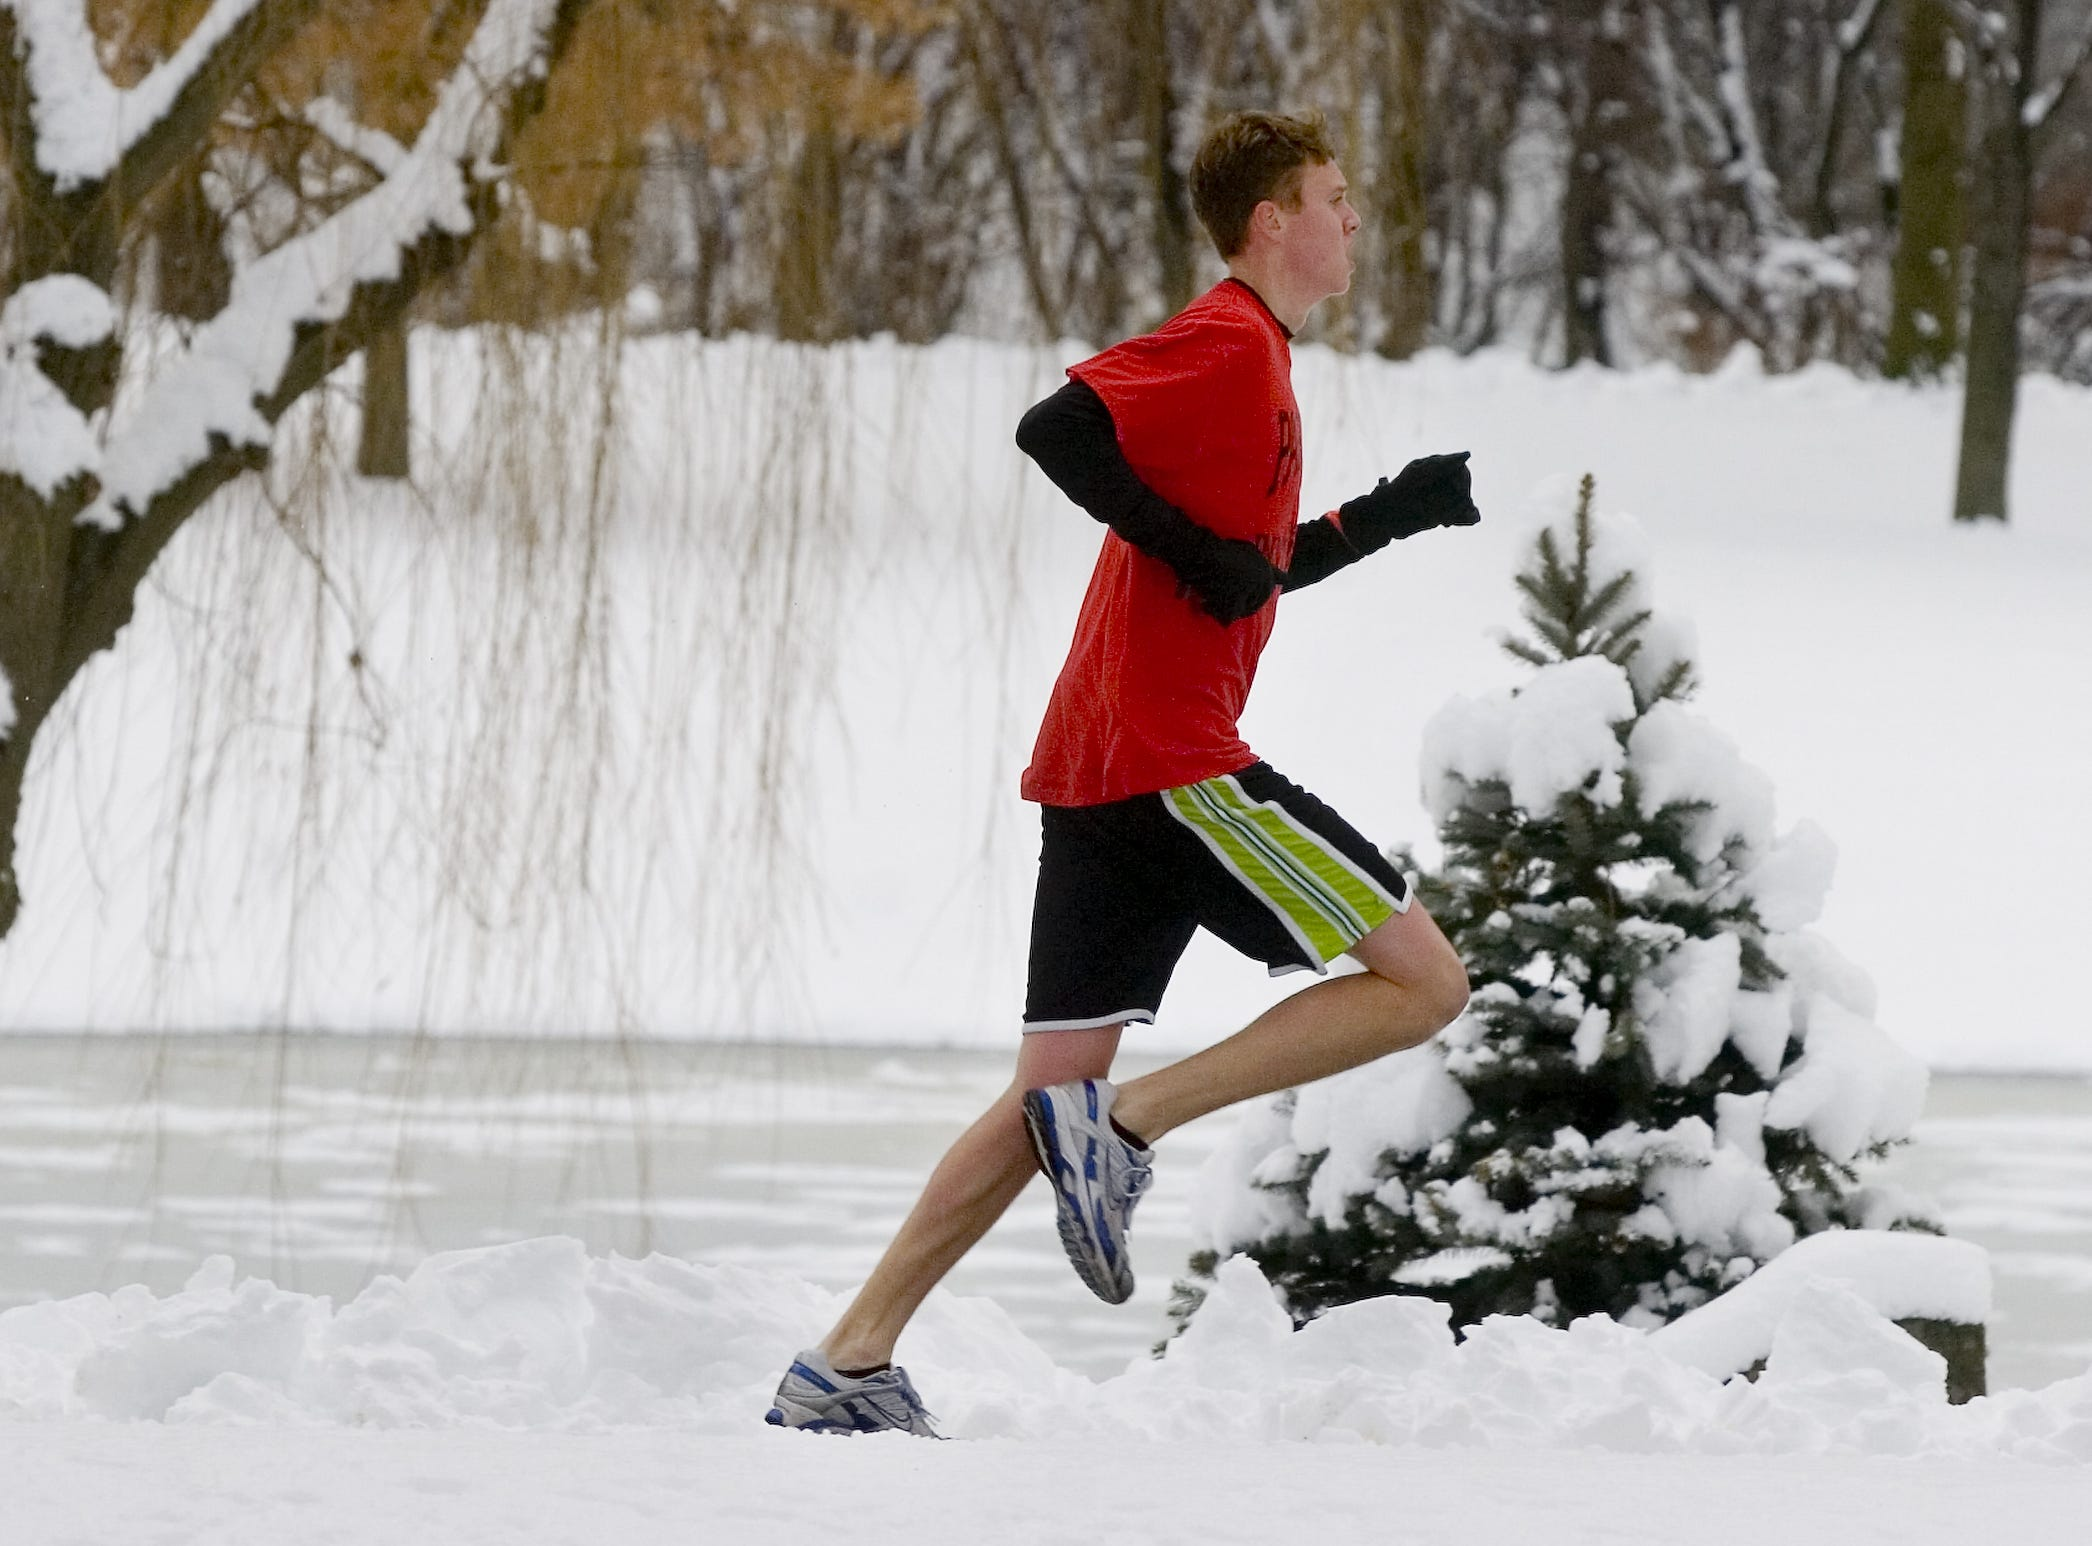 In 2007, Jeff Martinez of Johnson City is in the lead during the annual YMCA Resolution Run, held on New Year's Eve at Otsiningo Park. He won the 5K event with a time of 17:24.